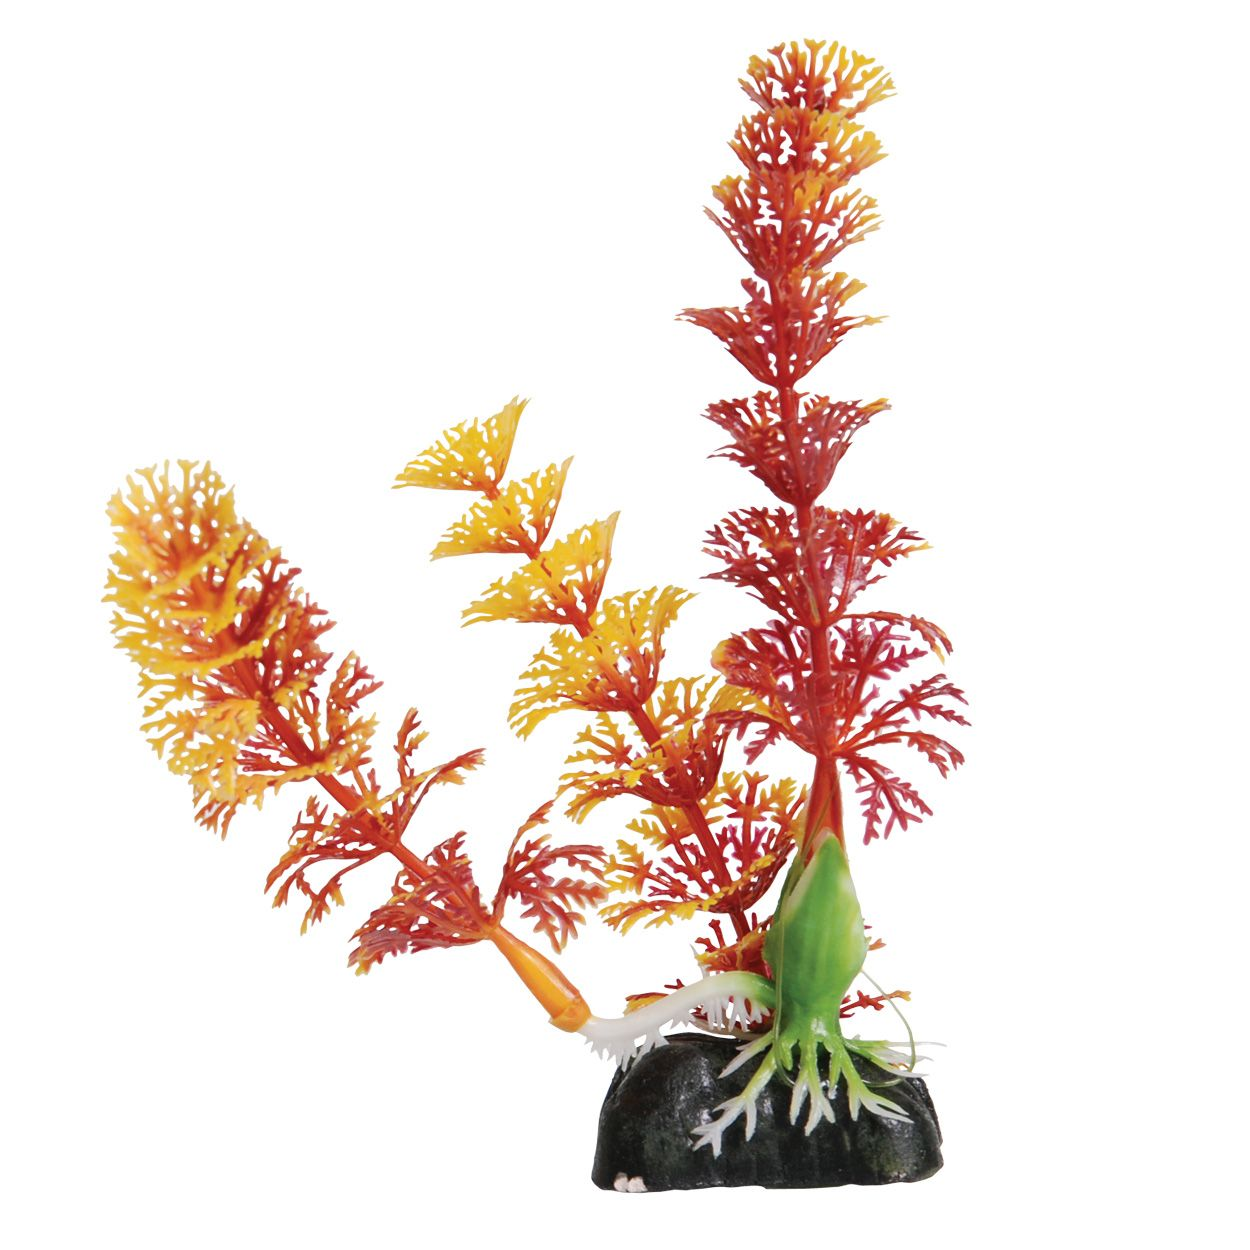 Underwater Treasures Red Cabomba - 5 inch